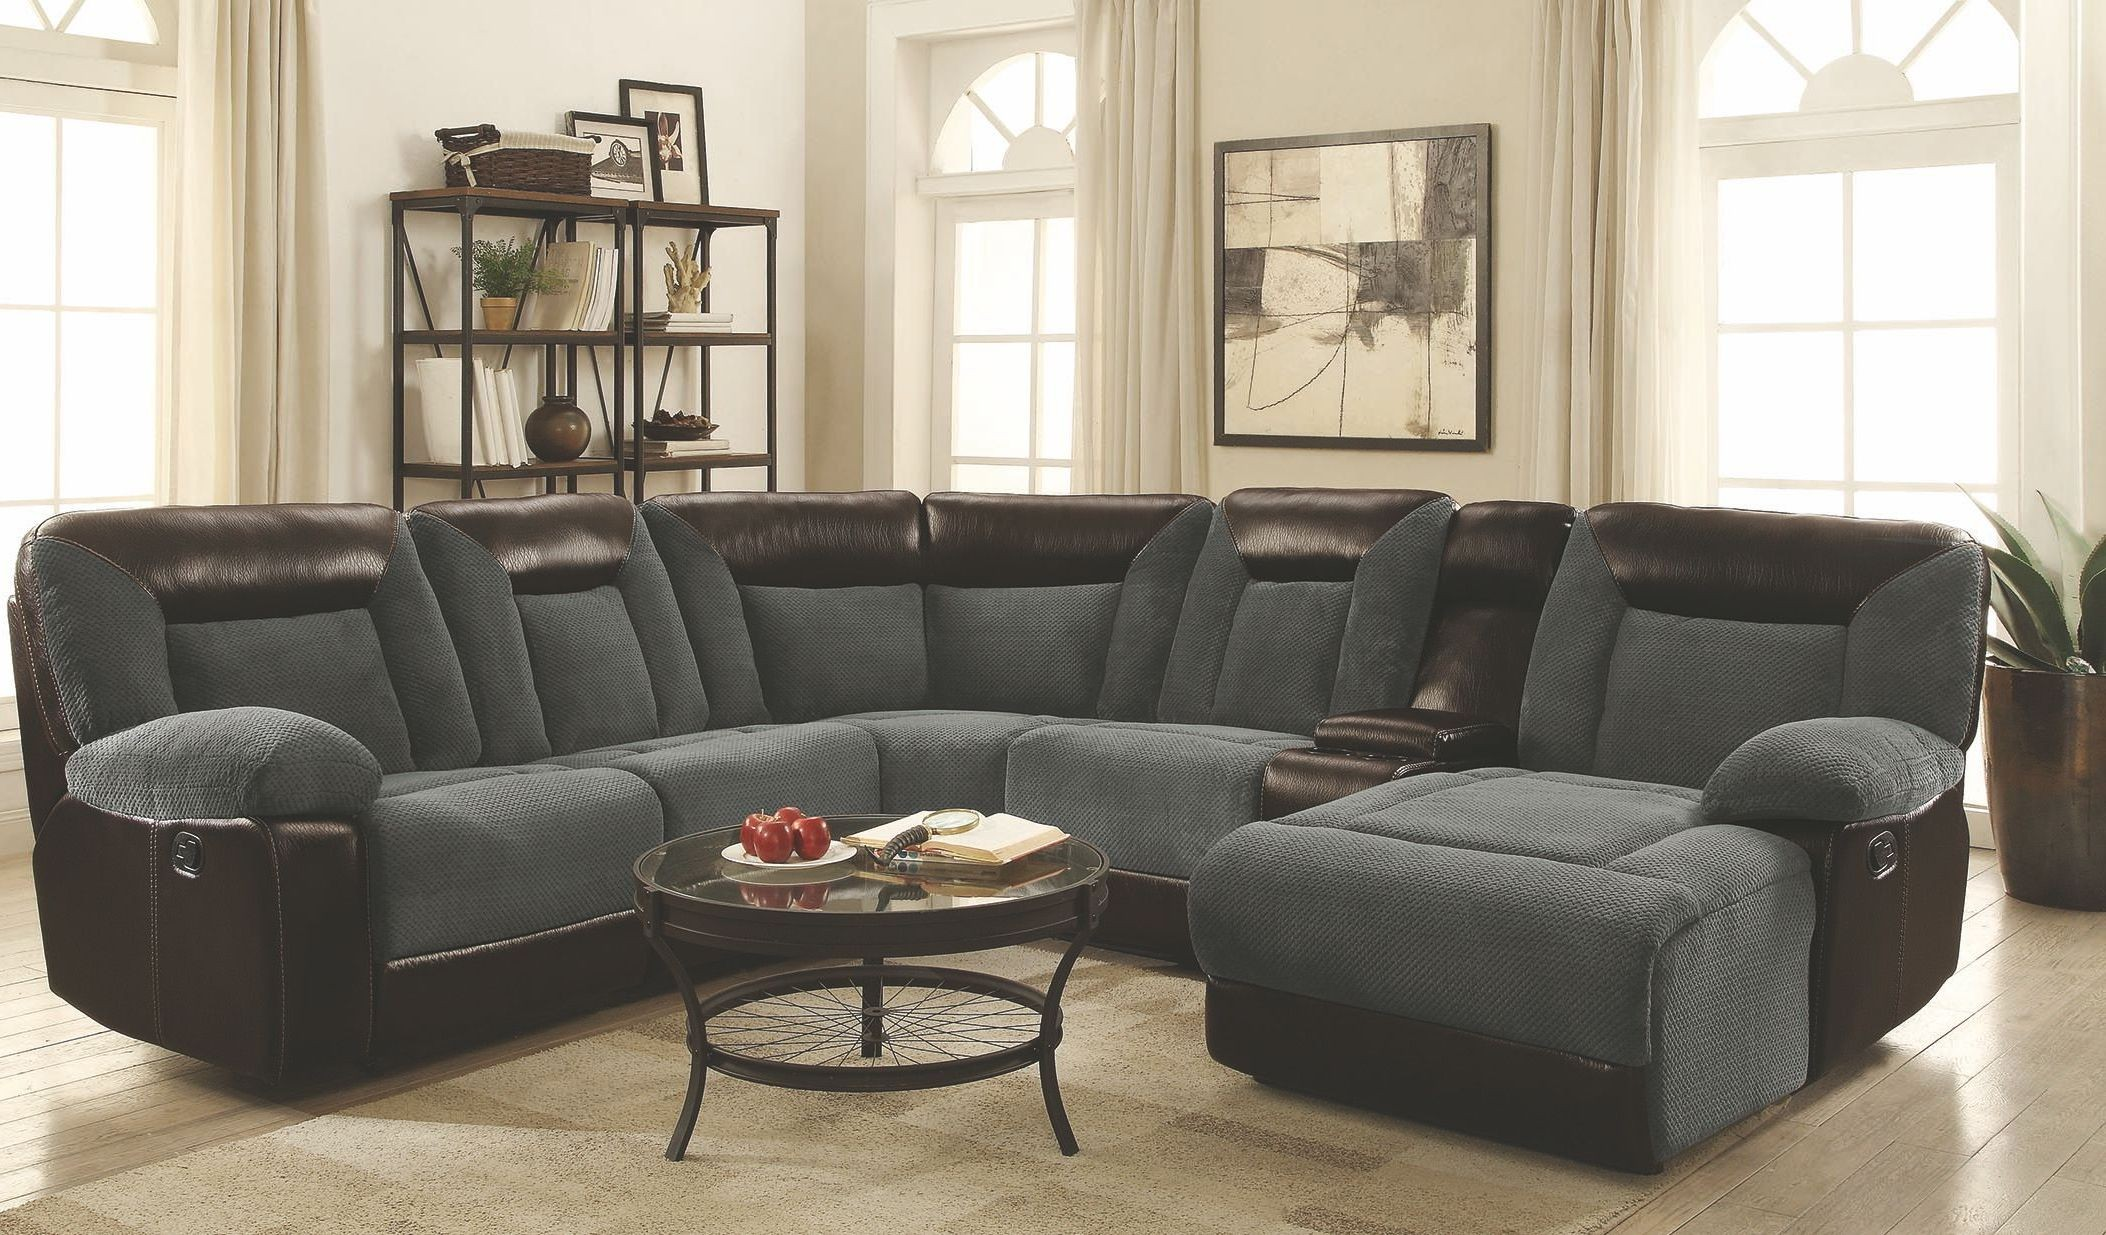 Cybele Motion Grey and Dark Brown Sectional from Coaster